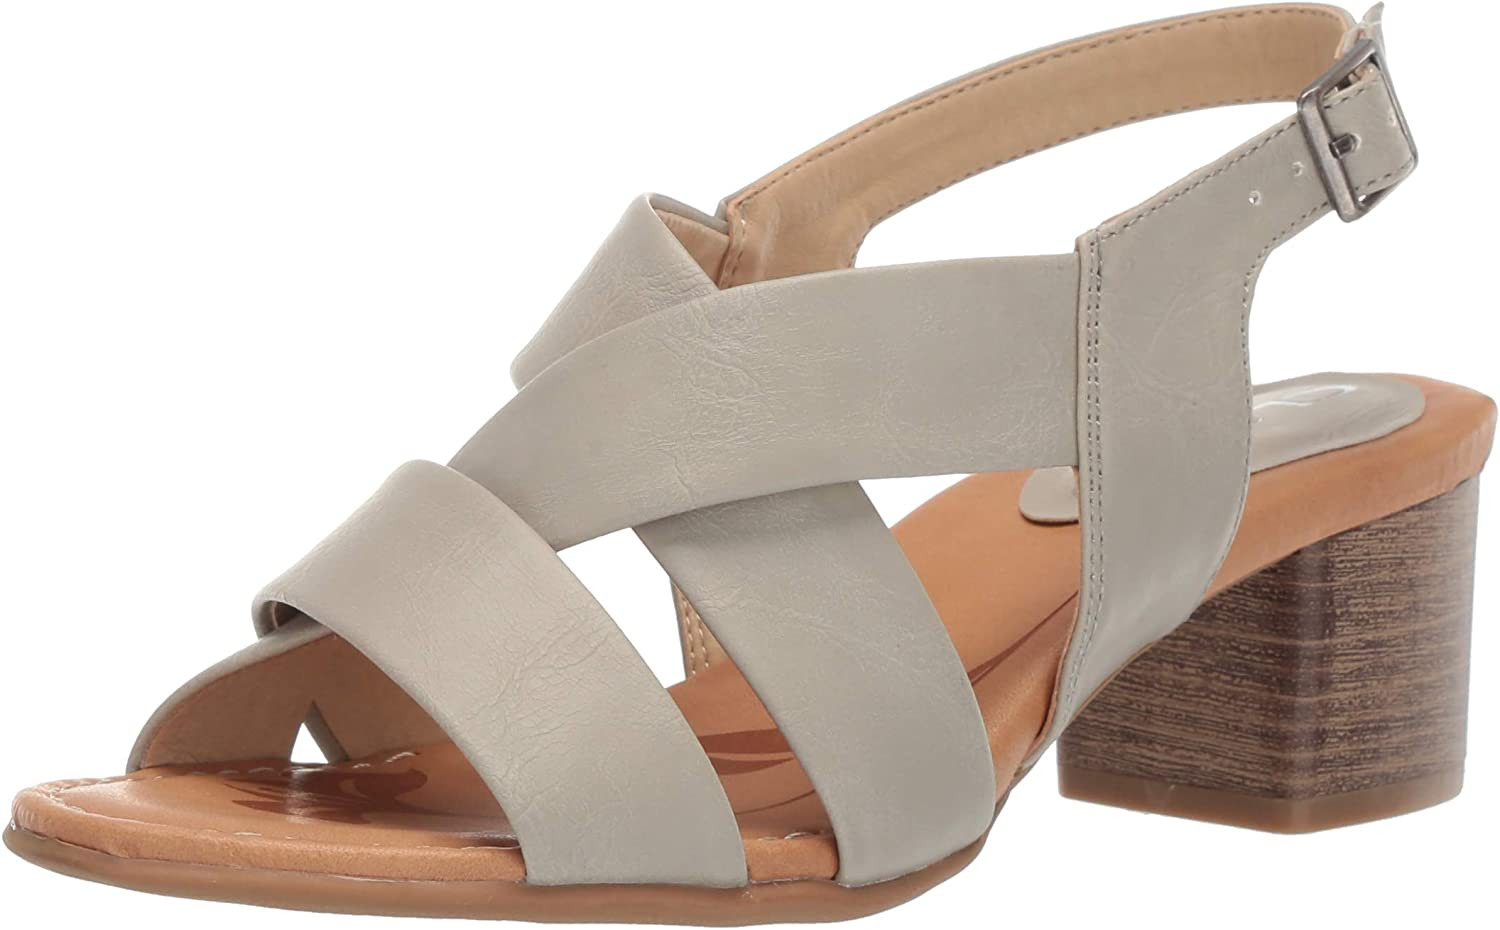 CL by Chinese Laundry Women's Marliee Heeled Sandal